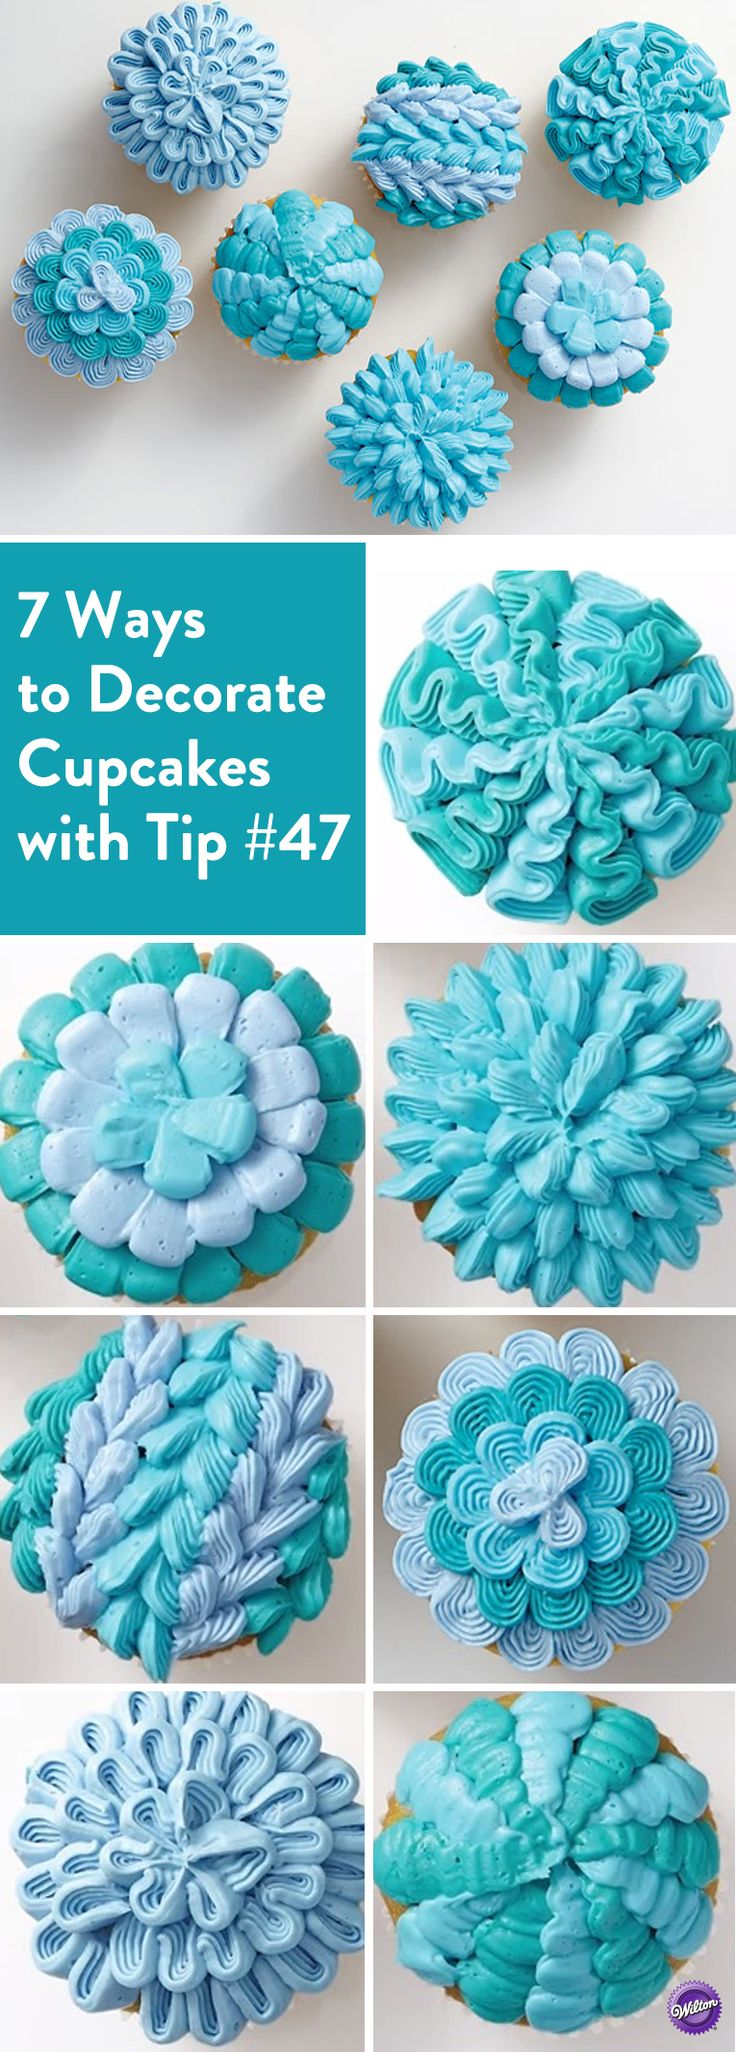 Best 20+ Decorate cupcakes ideas on Pinterest | How to decorate ...